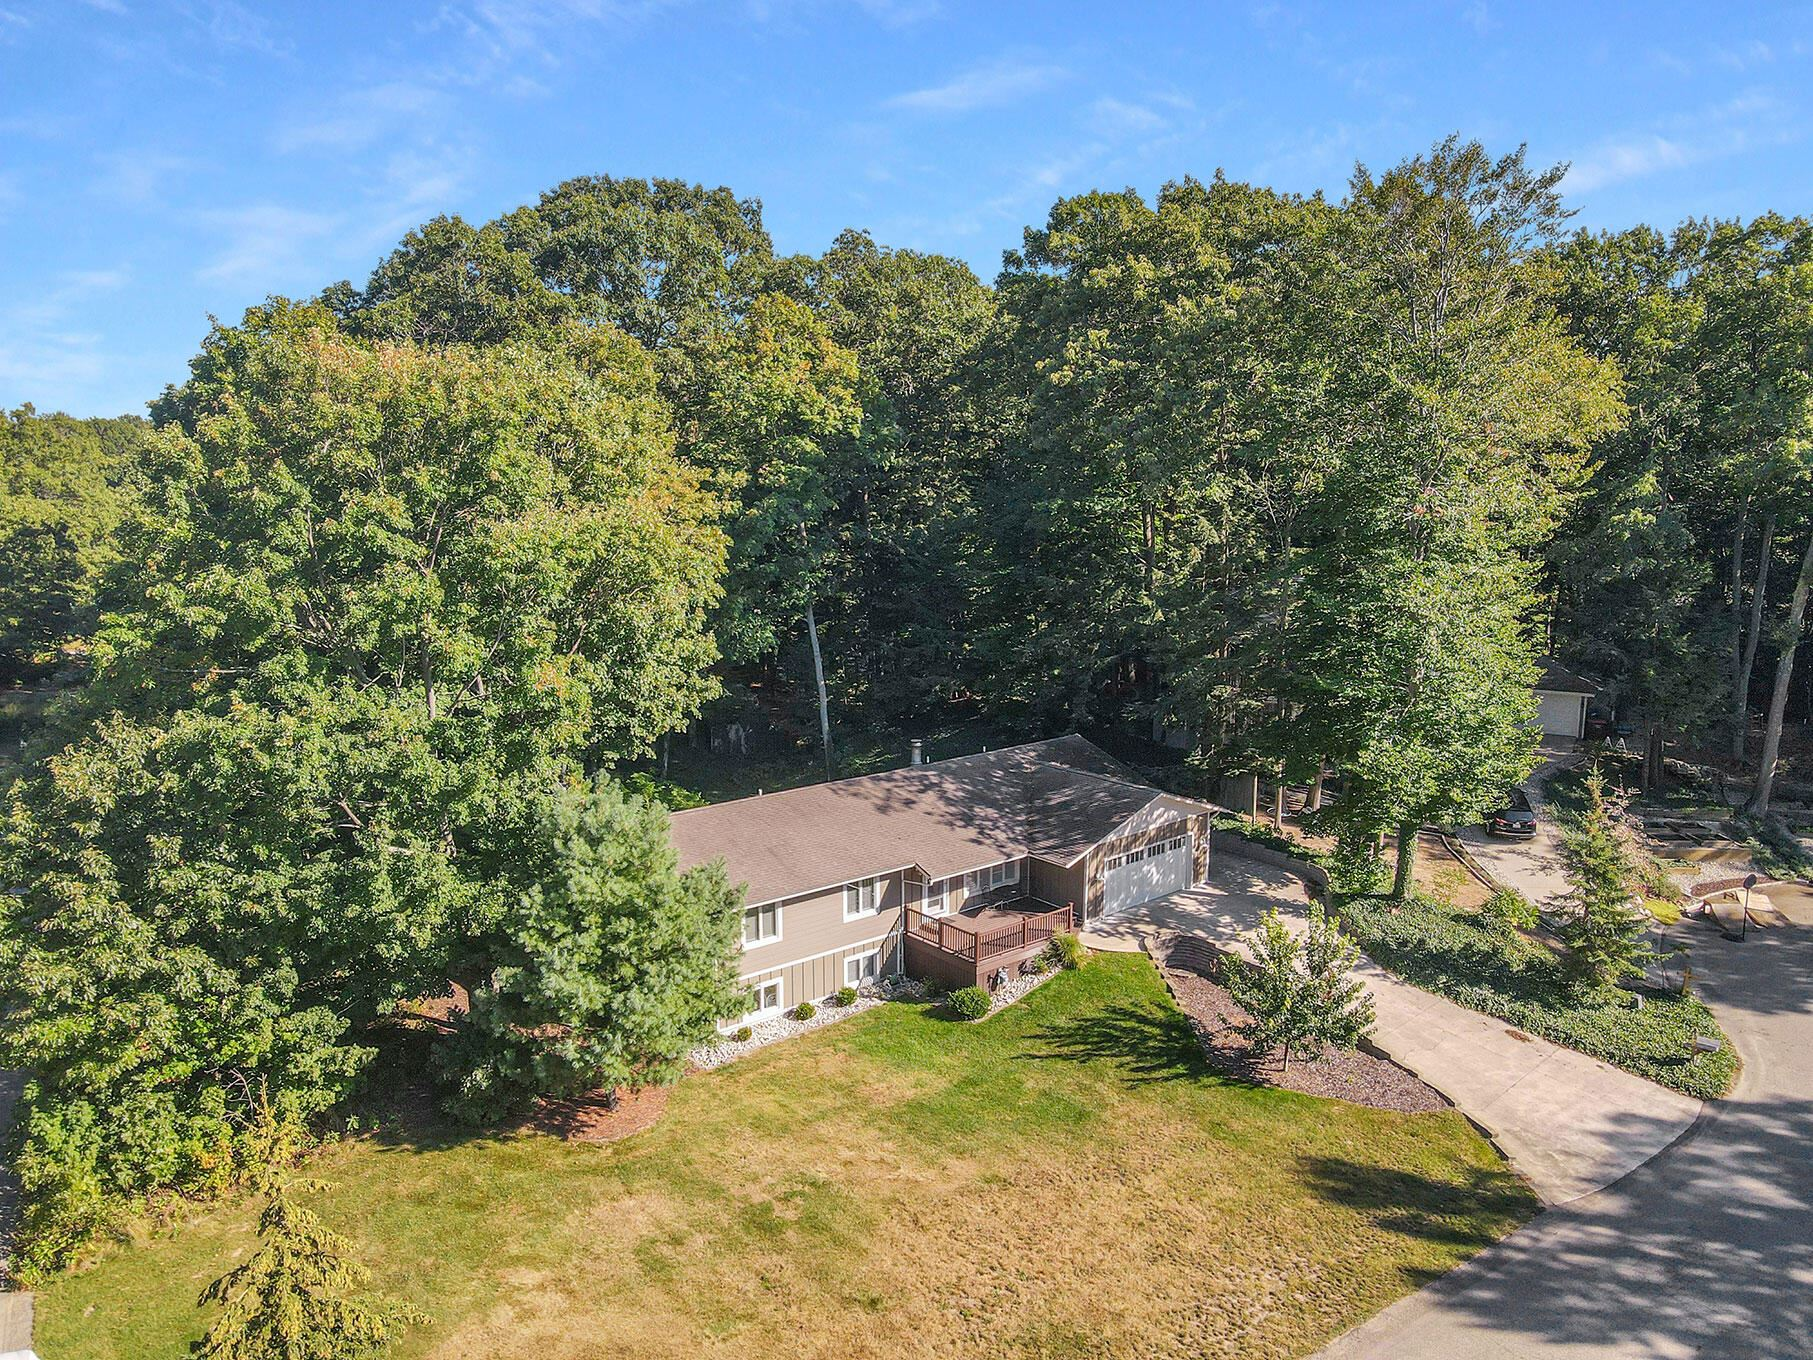 9436 Lakeview Court, West Olive, MI 49460 - MLS#: 21106280